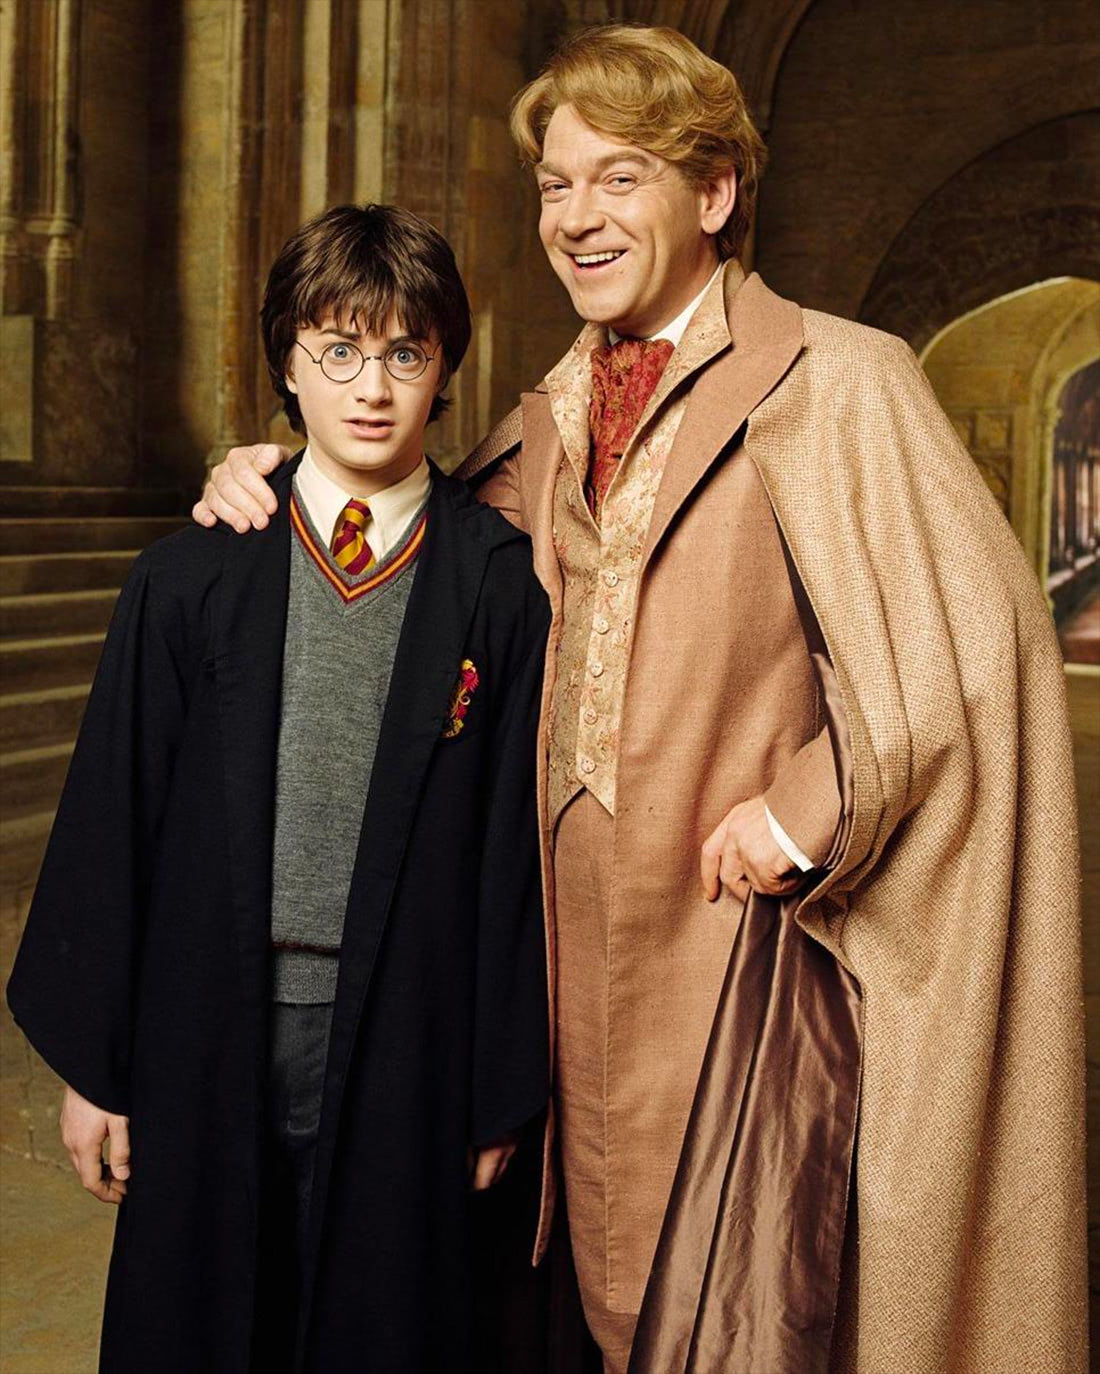 Portrait of Harry Potter and Gilderoy Lockhart